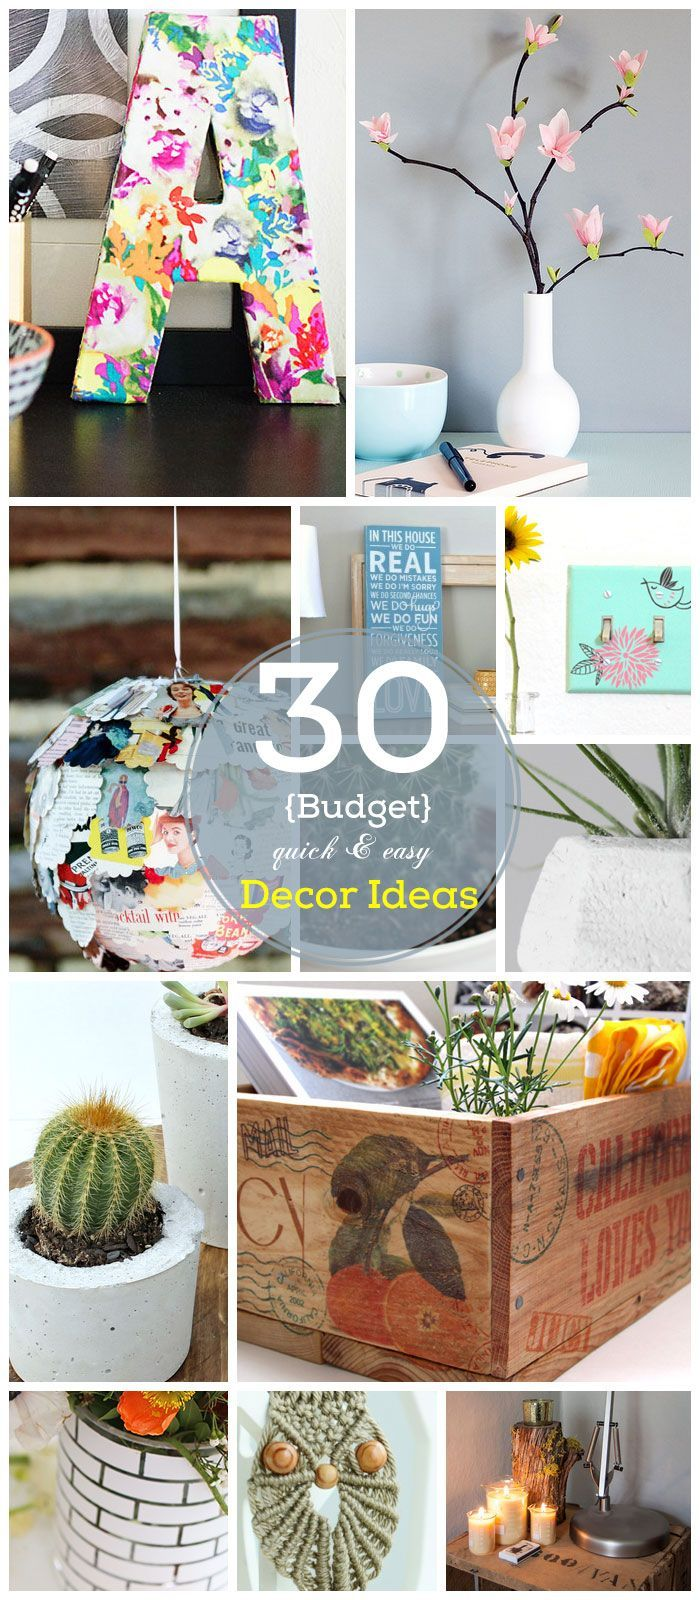 50 Super Easy Affordable Diy Home Decor Ideas And Projects Diy Living Room Decor Diy On A Budget Diy And Crafts Sewing